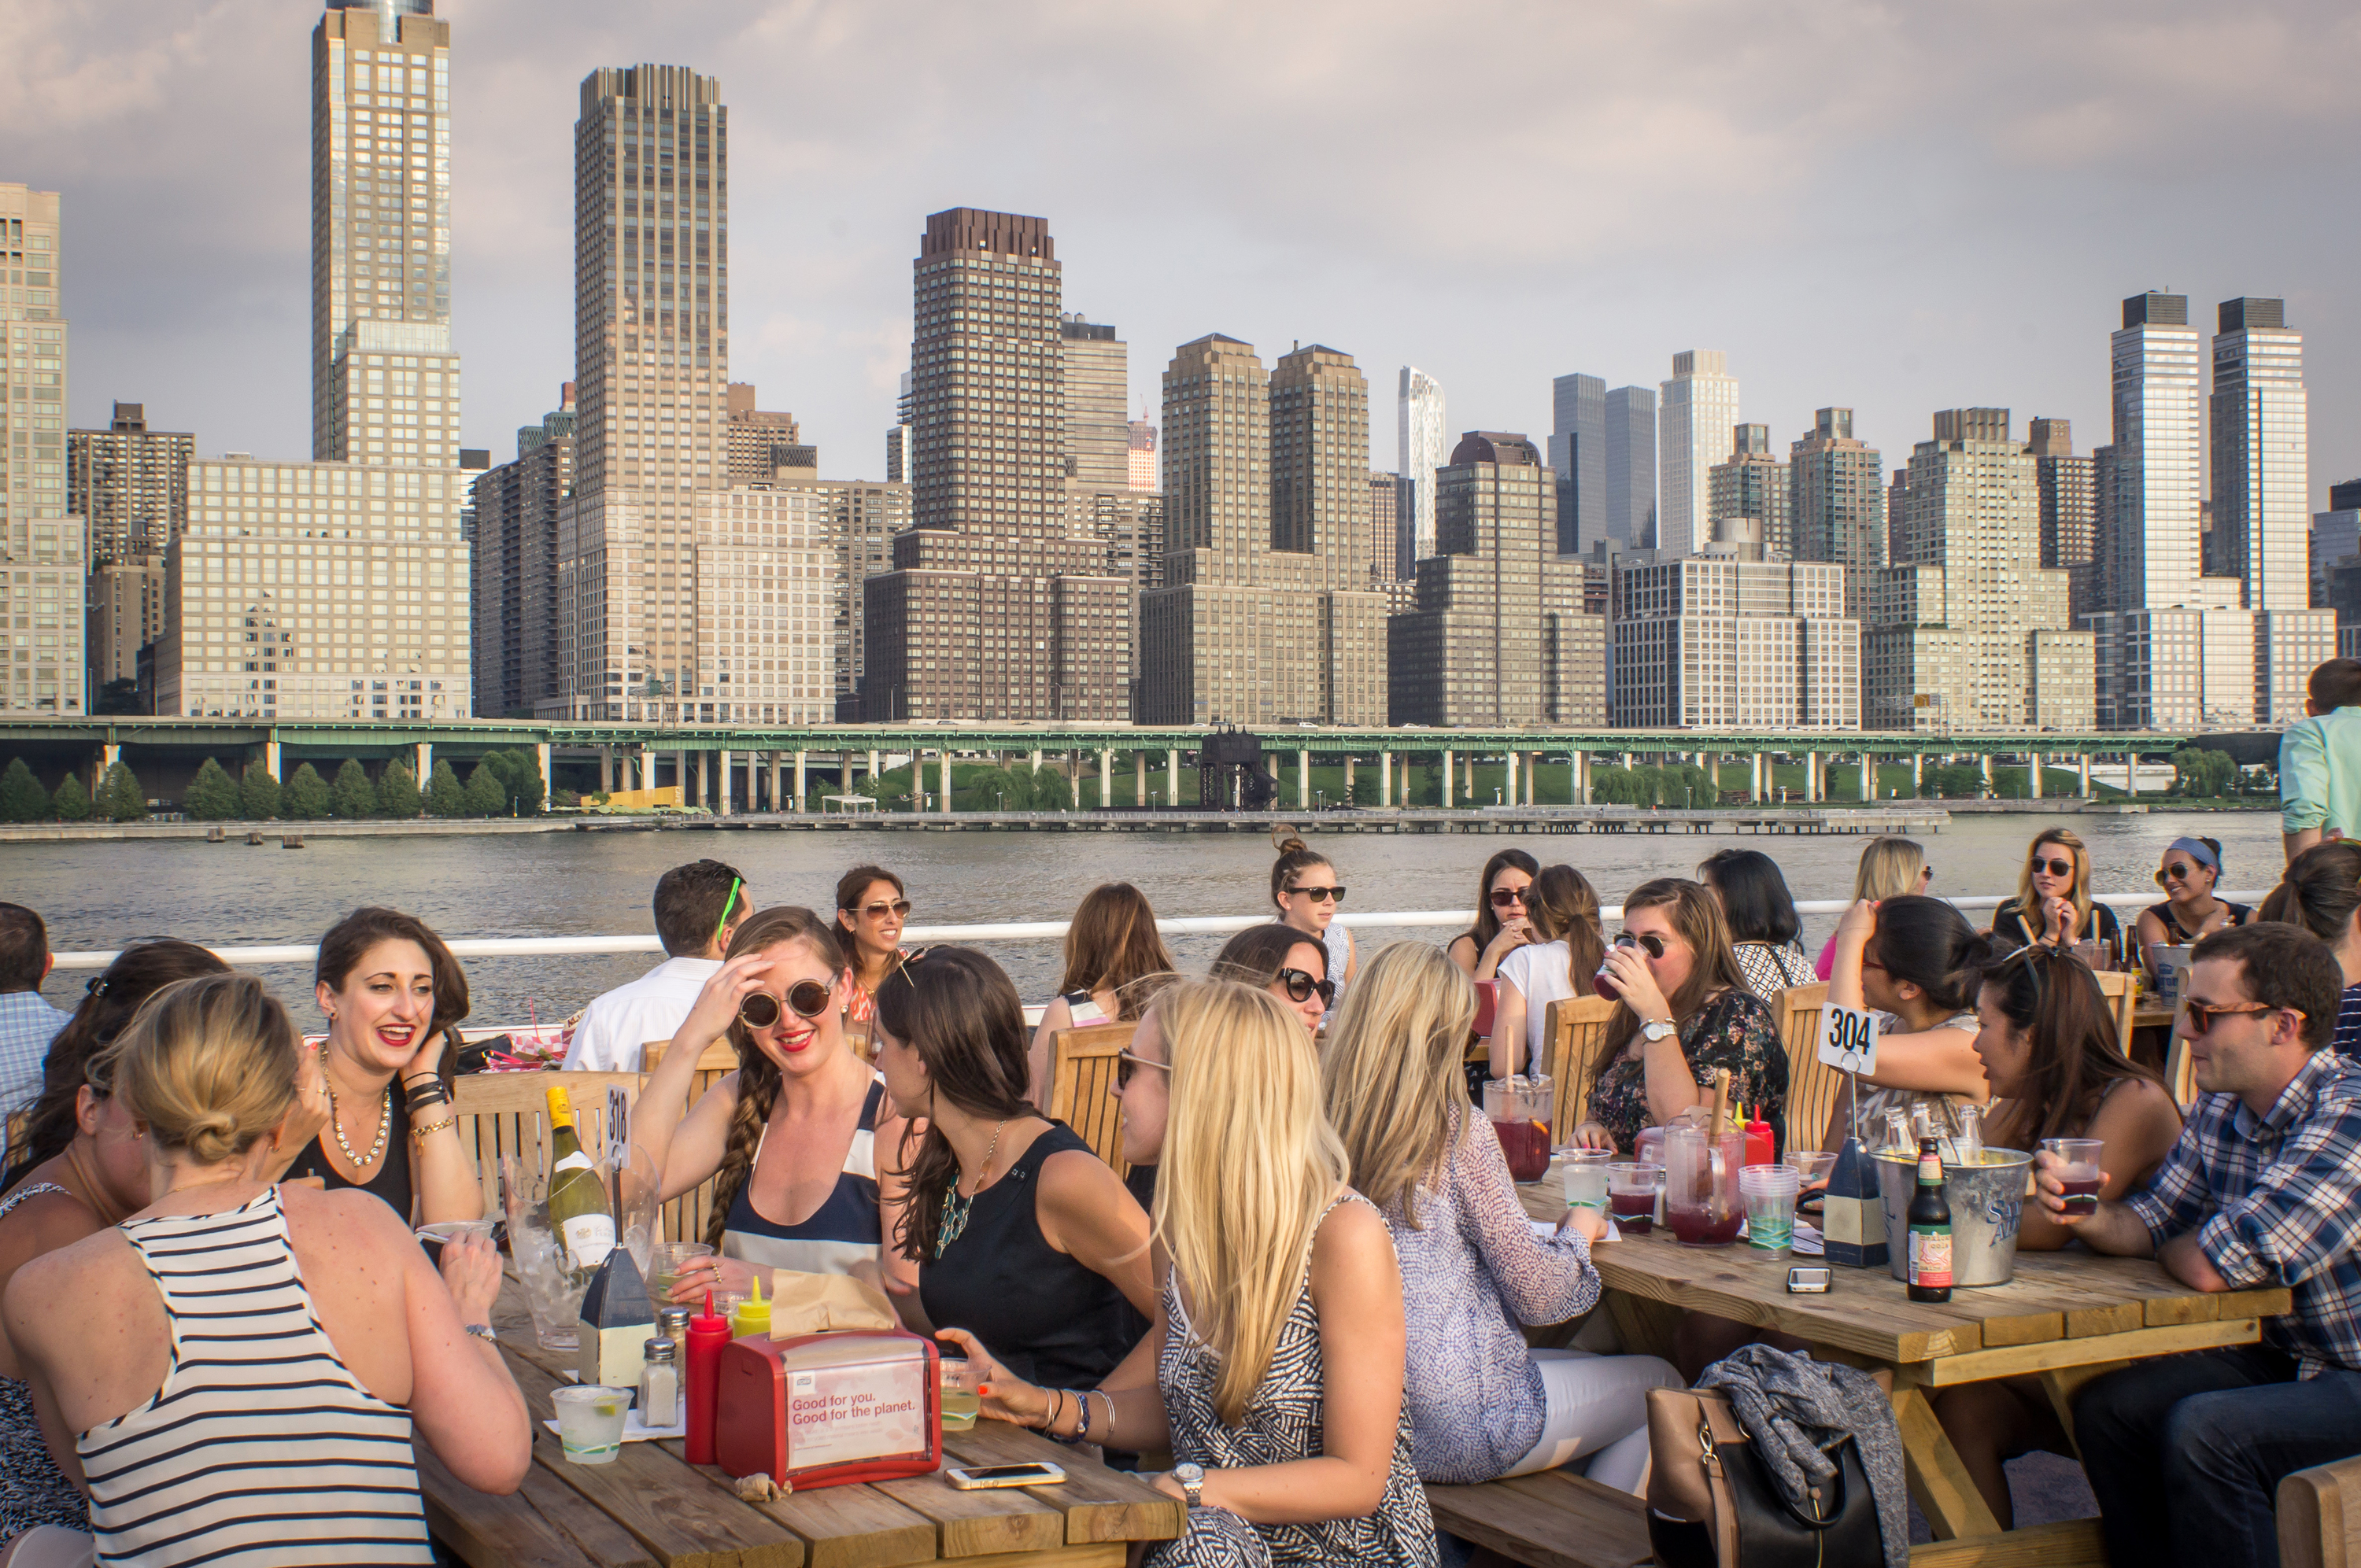 The best waterfront restaurants and bars in NYC